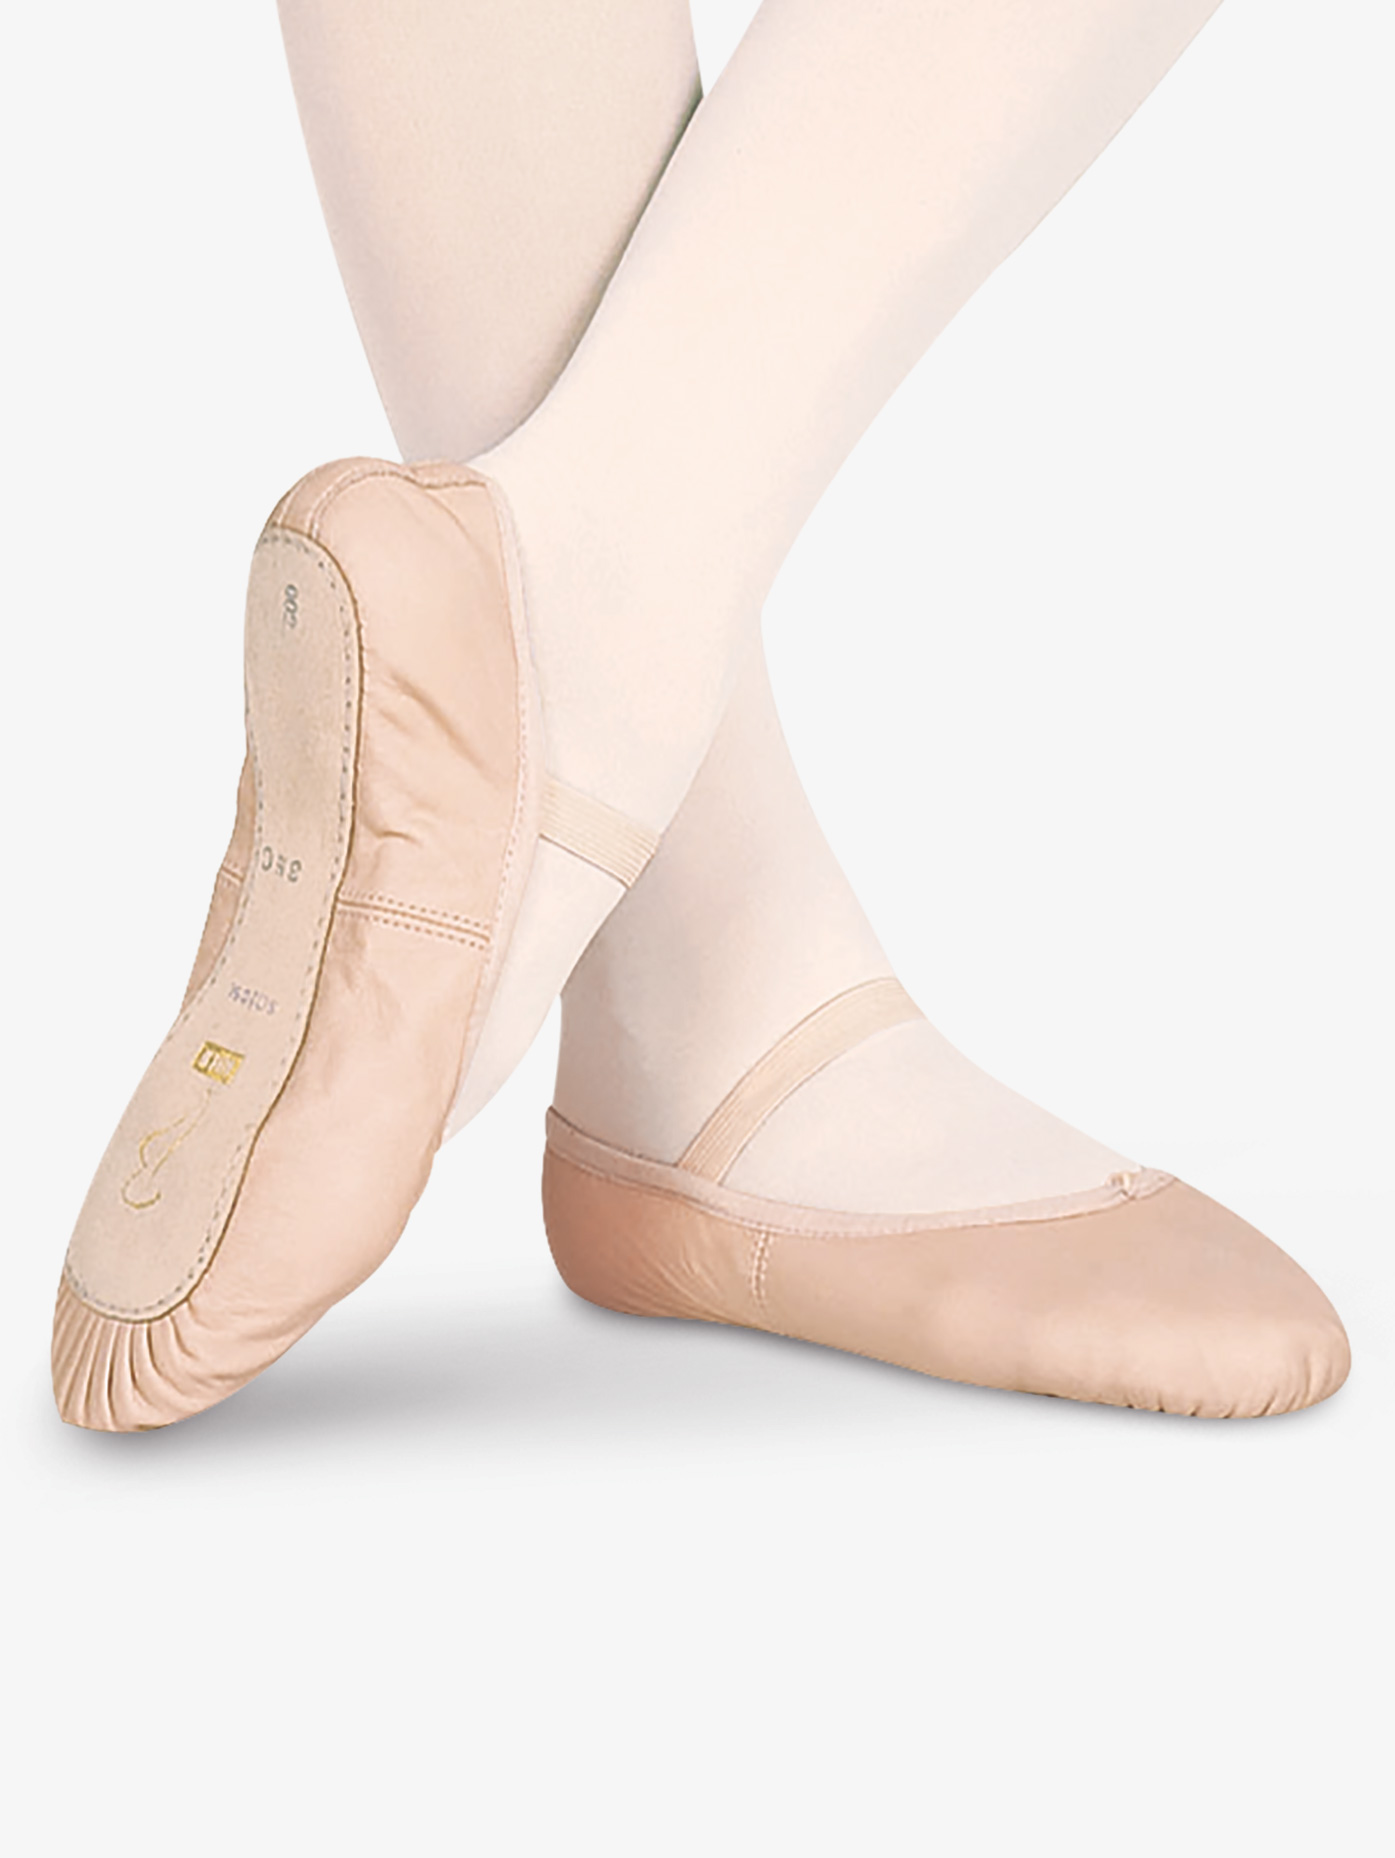 Bloch Child Dansoft Leather Full Sole Ballet Shoes S0205G